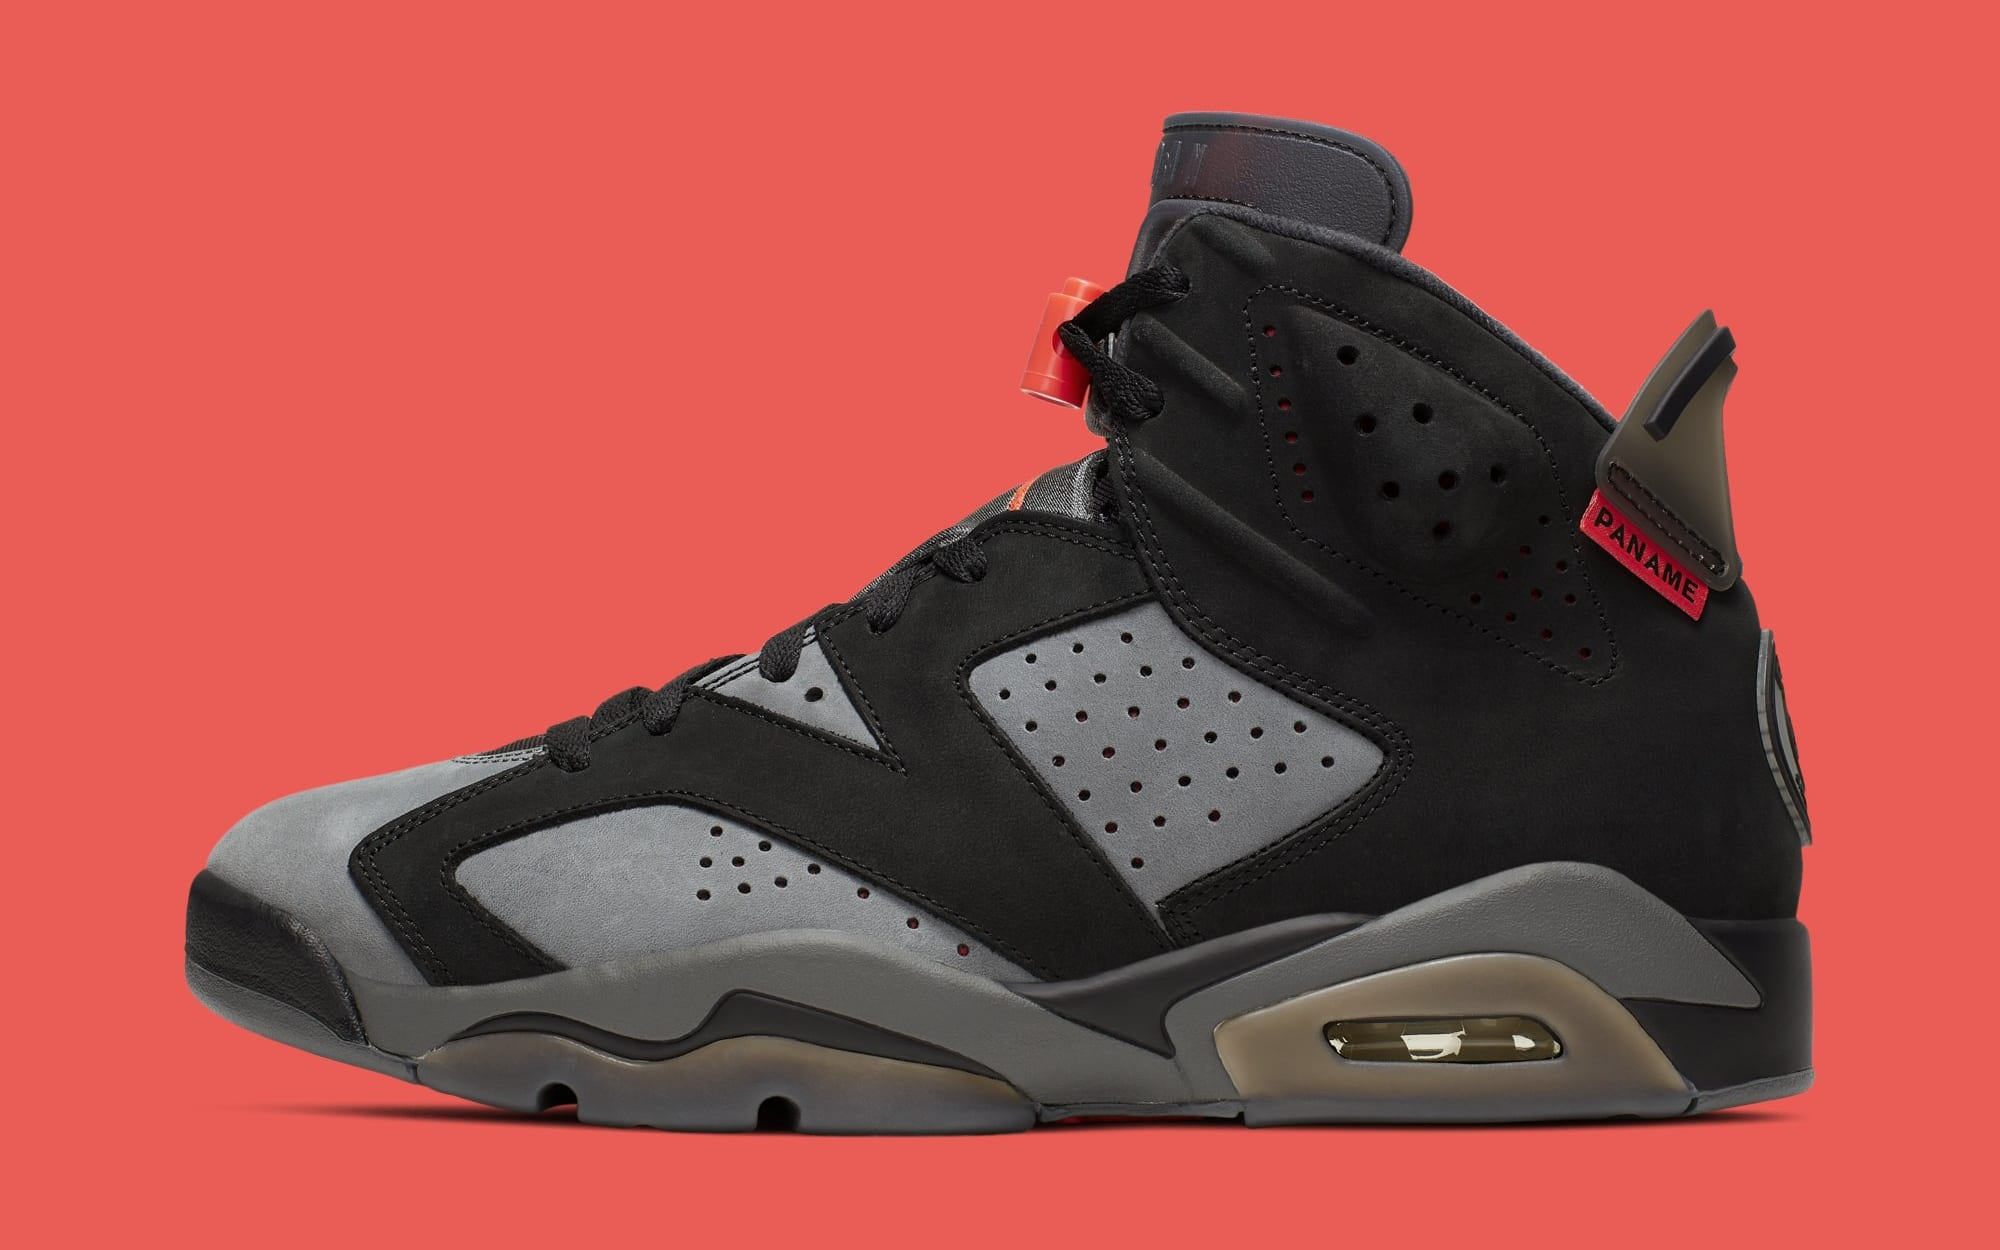 PSG x Air Jordan 6 CK1229-001 (Lateral)